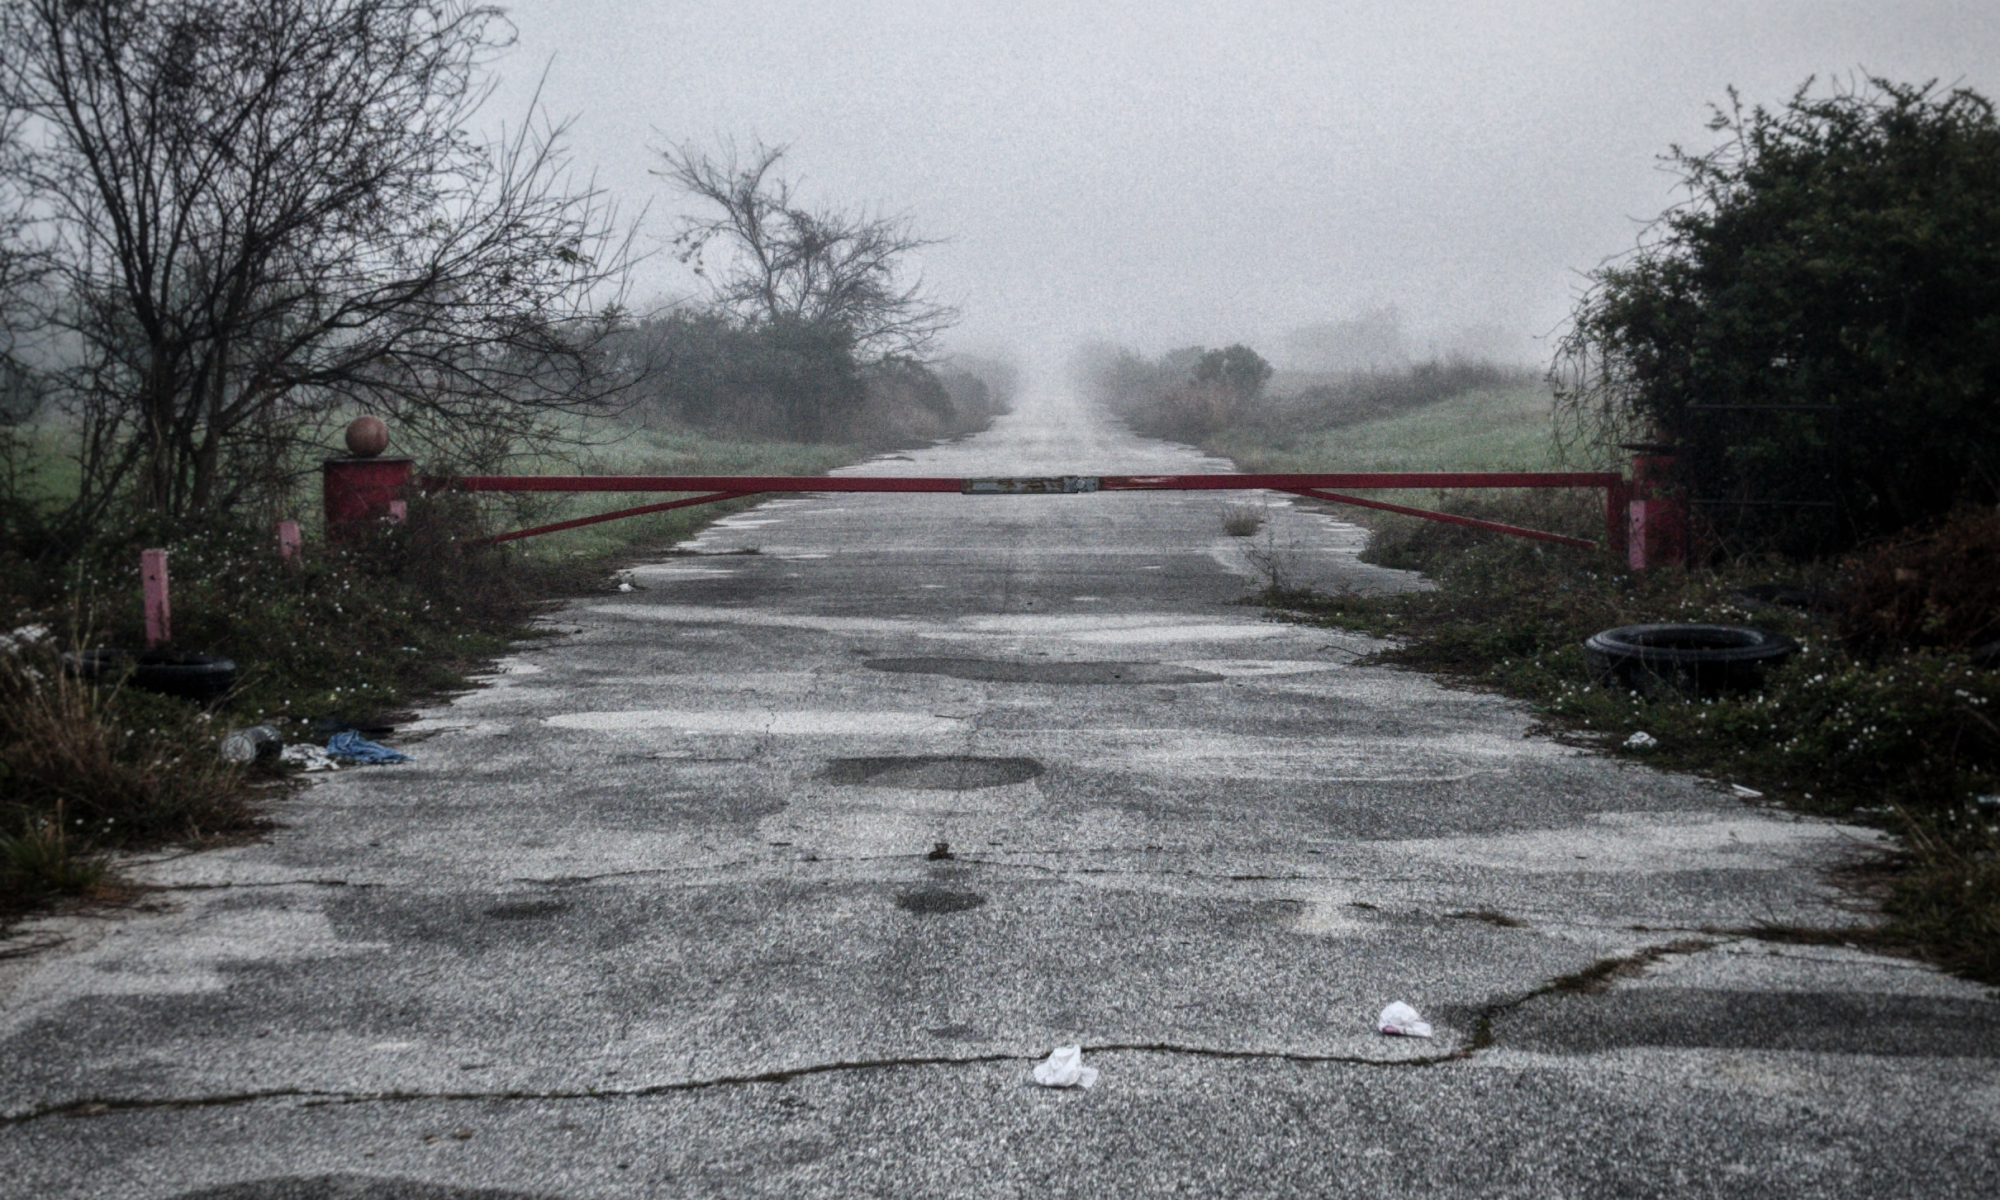 A blocked, disused road stretching off into the foggy distance.